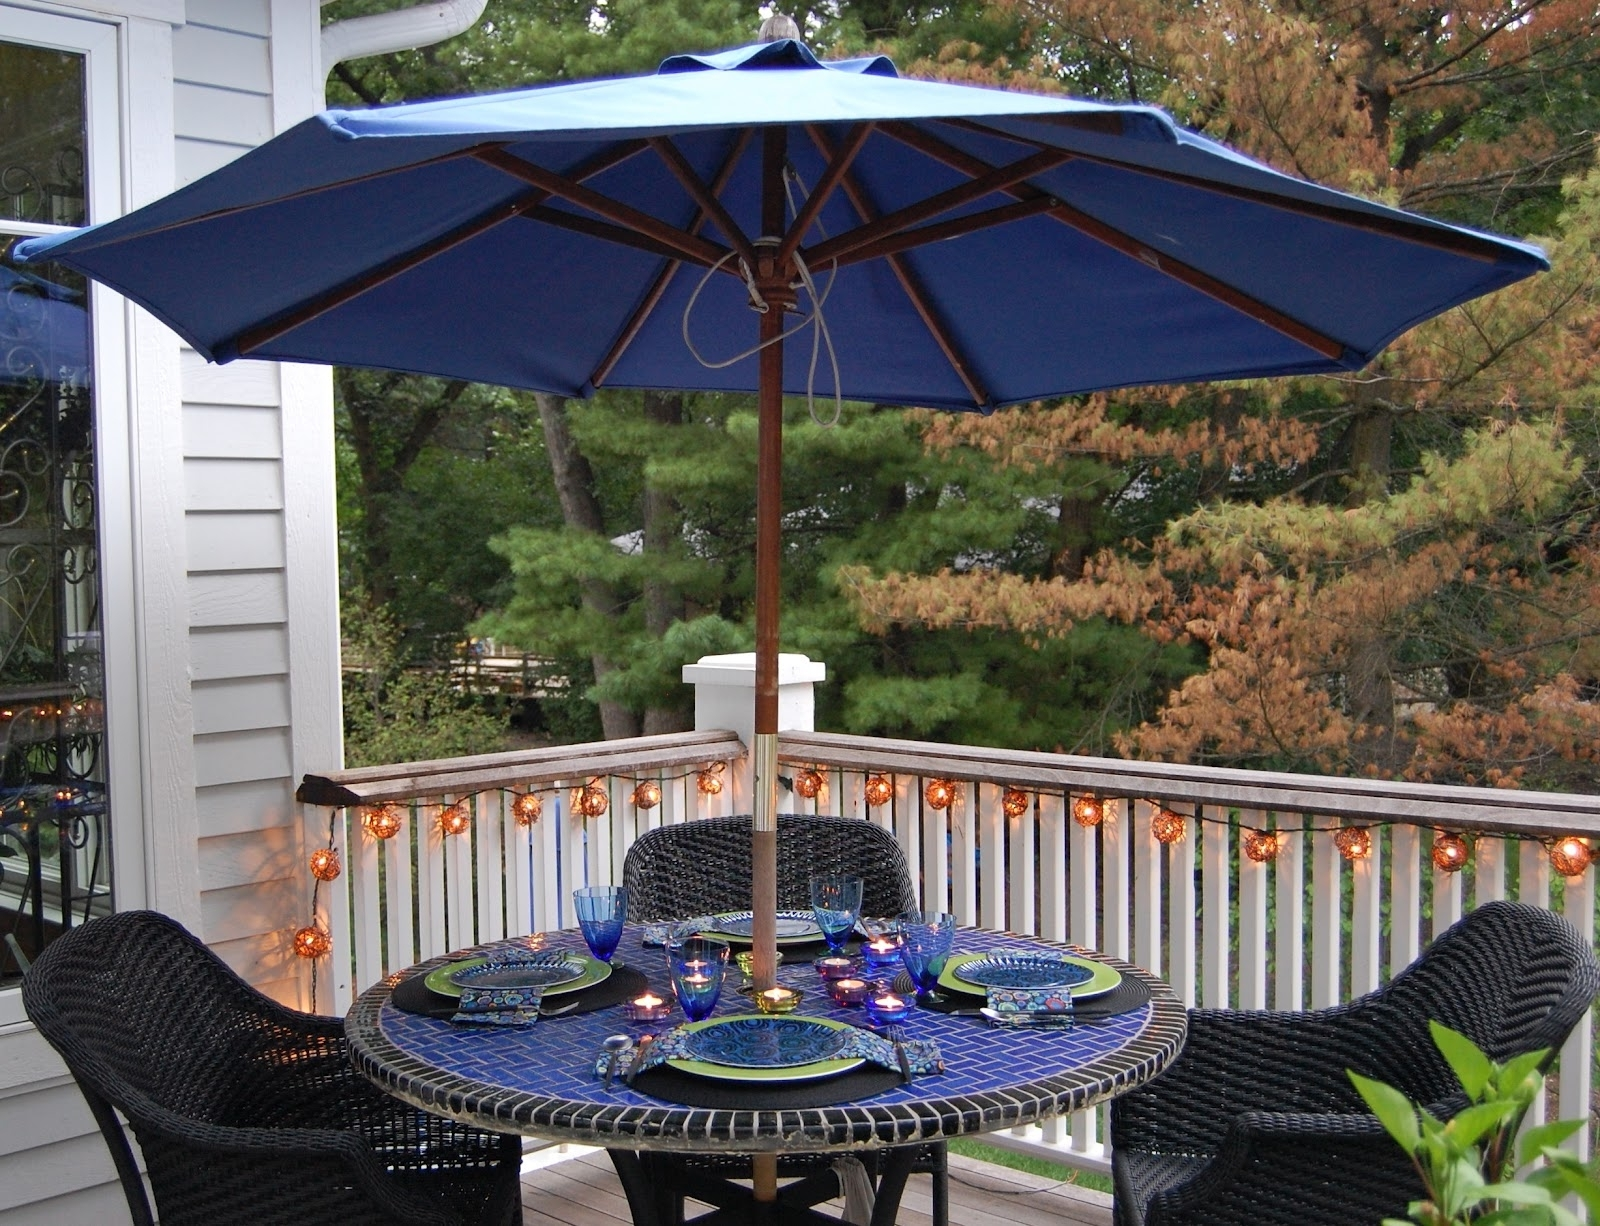 Furniture: Outdoor Outdoor Patio Sets With Umbrella Awesome Design Intended For Fashionable Walmart Patio Umbrellas (Gallery 14 of 20)